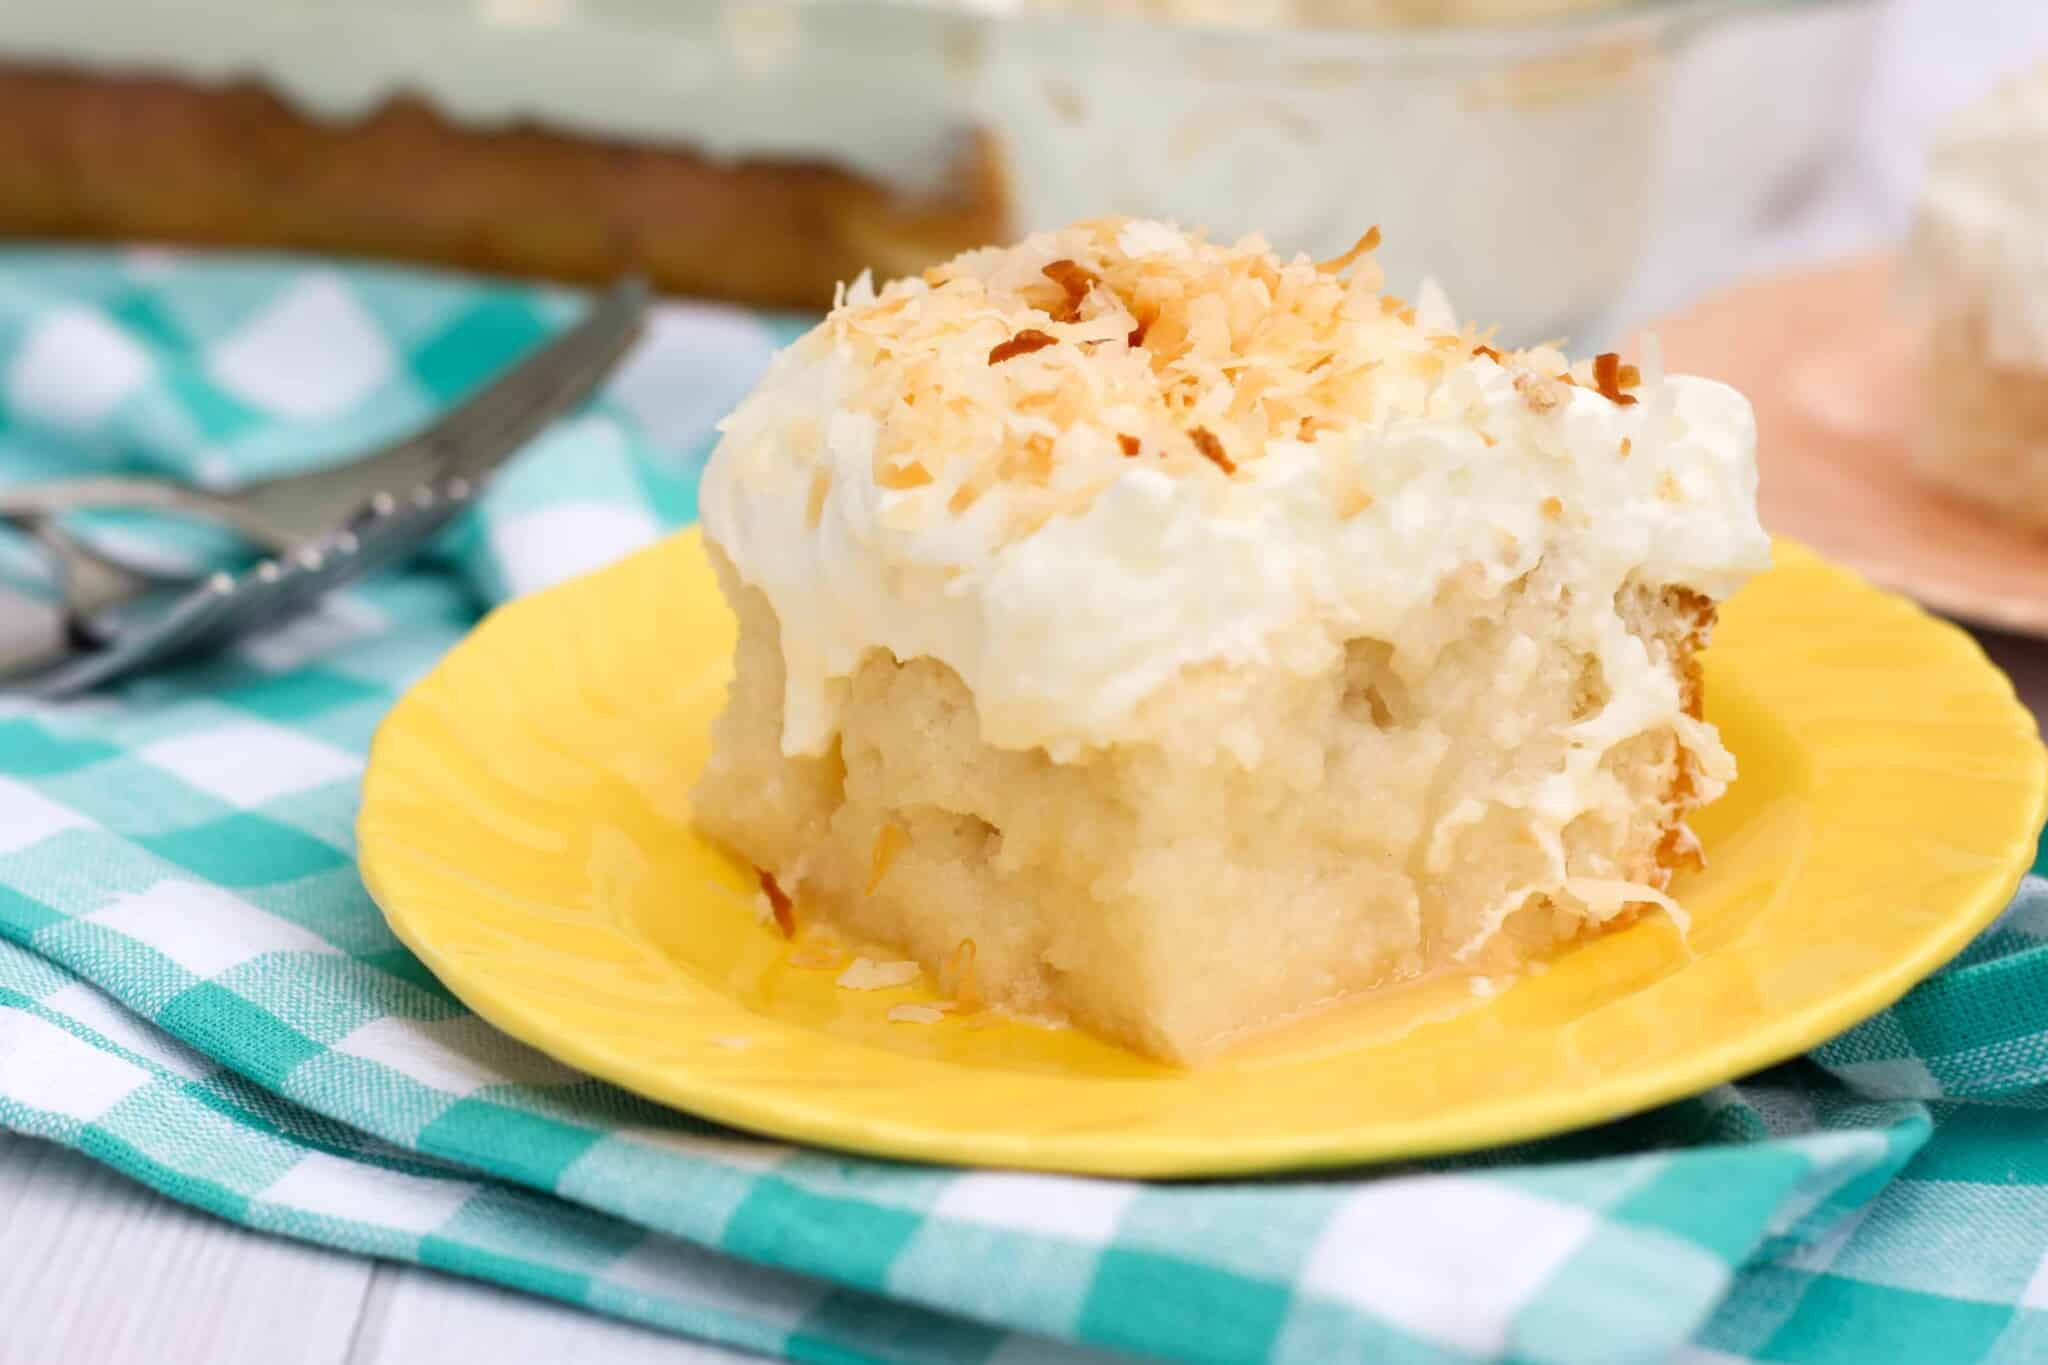 Gluten free coconut poke cake made with white cake, cream of coconut poured over the top, and topped with whipped cream and toasted coconut. So many layers of coconut flavor!